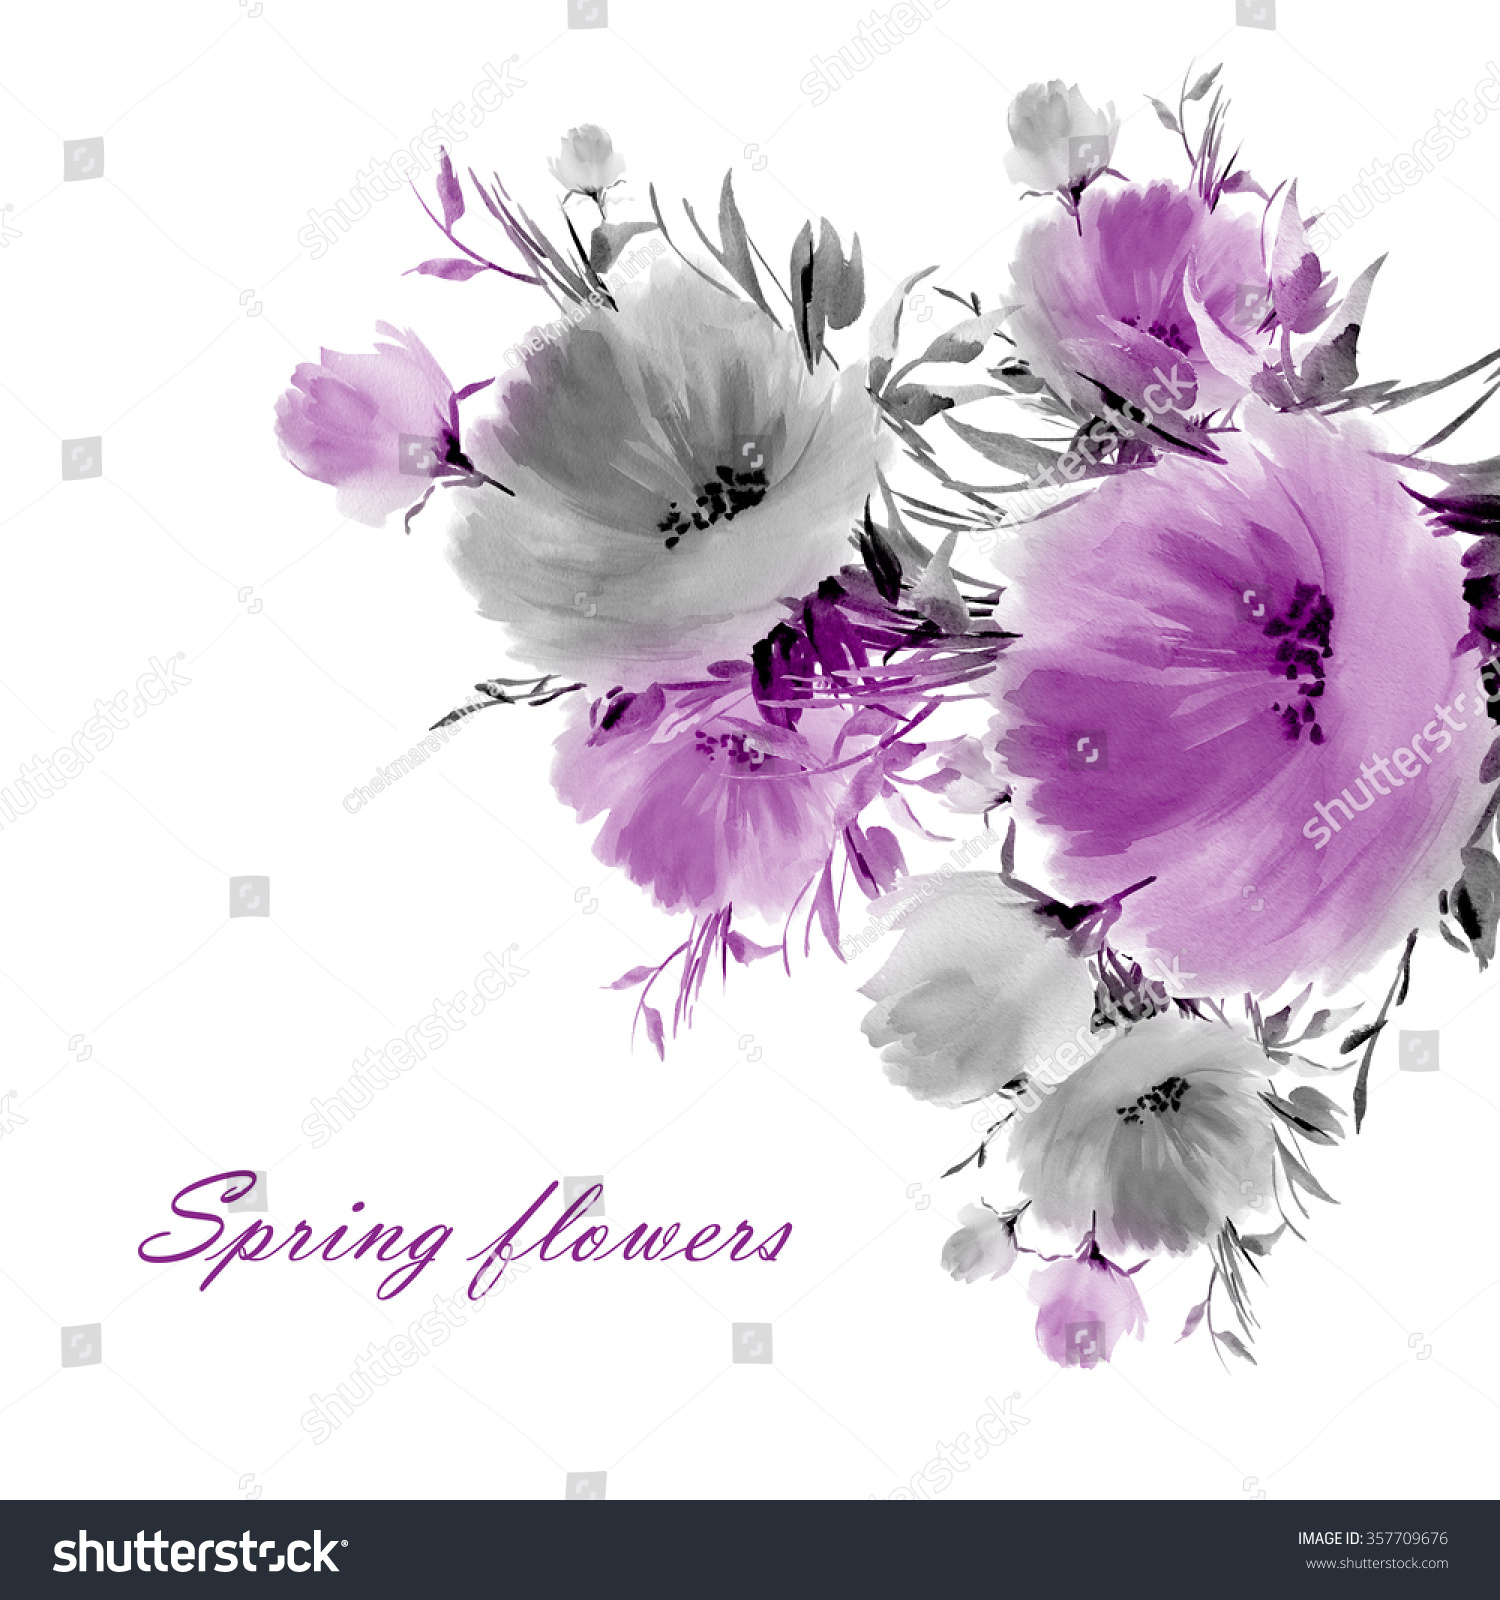 Floral Watercolor Spring Flowers Beautiful Floral Stock Illustration